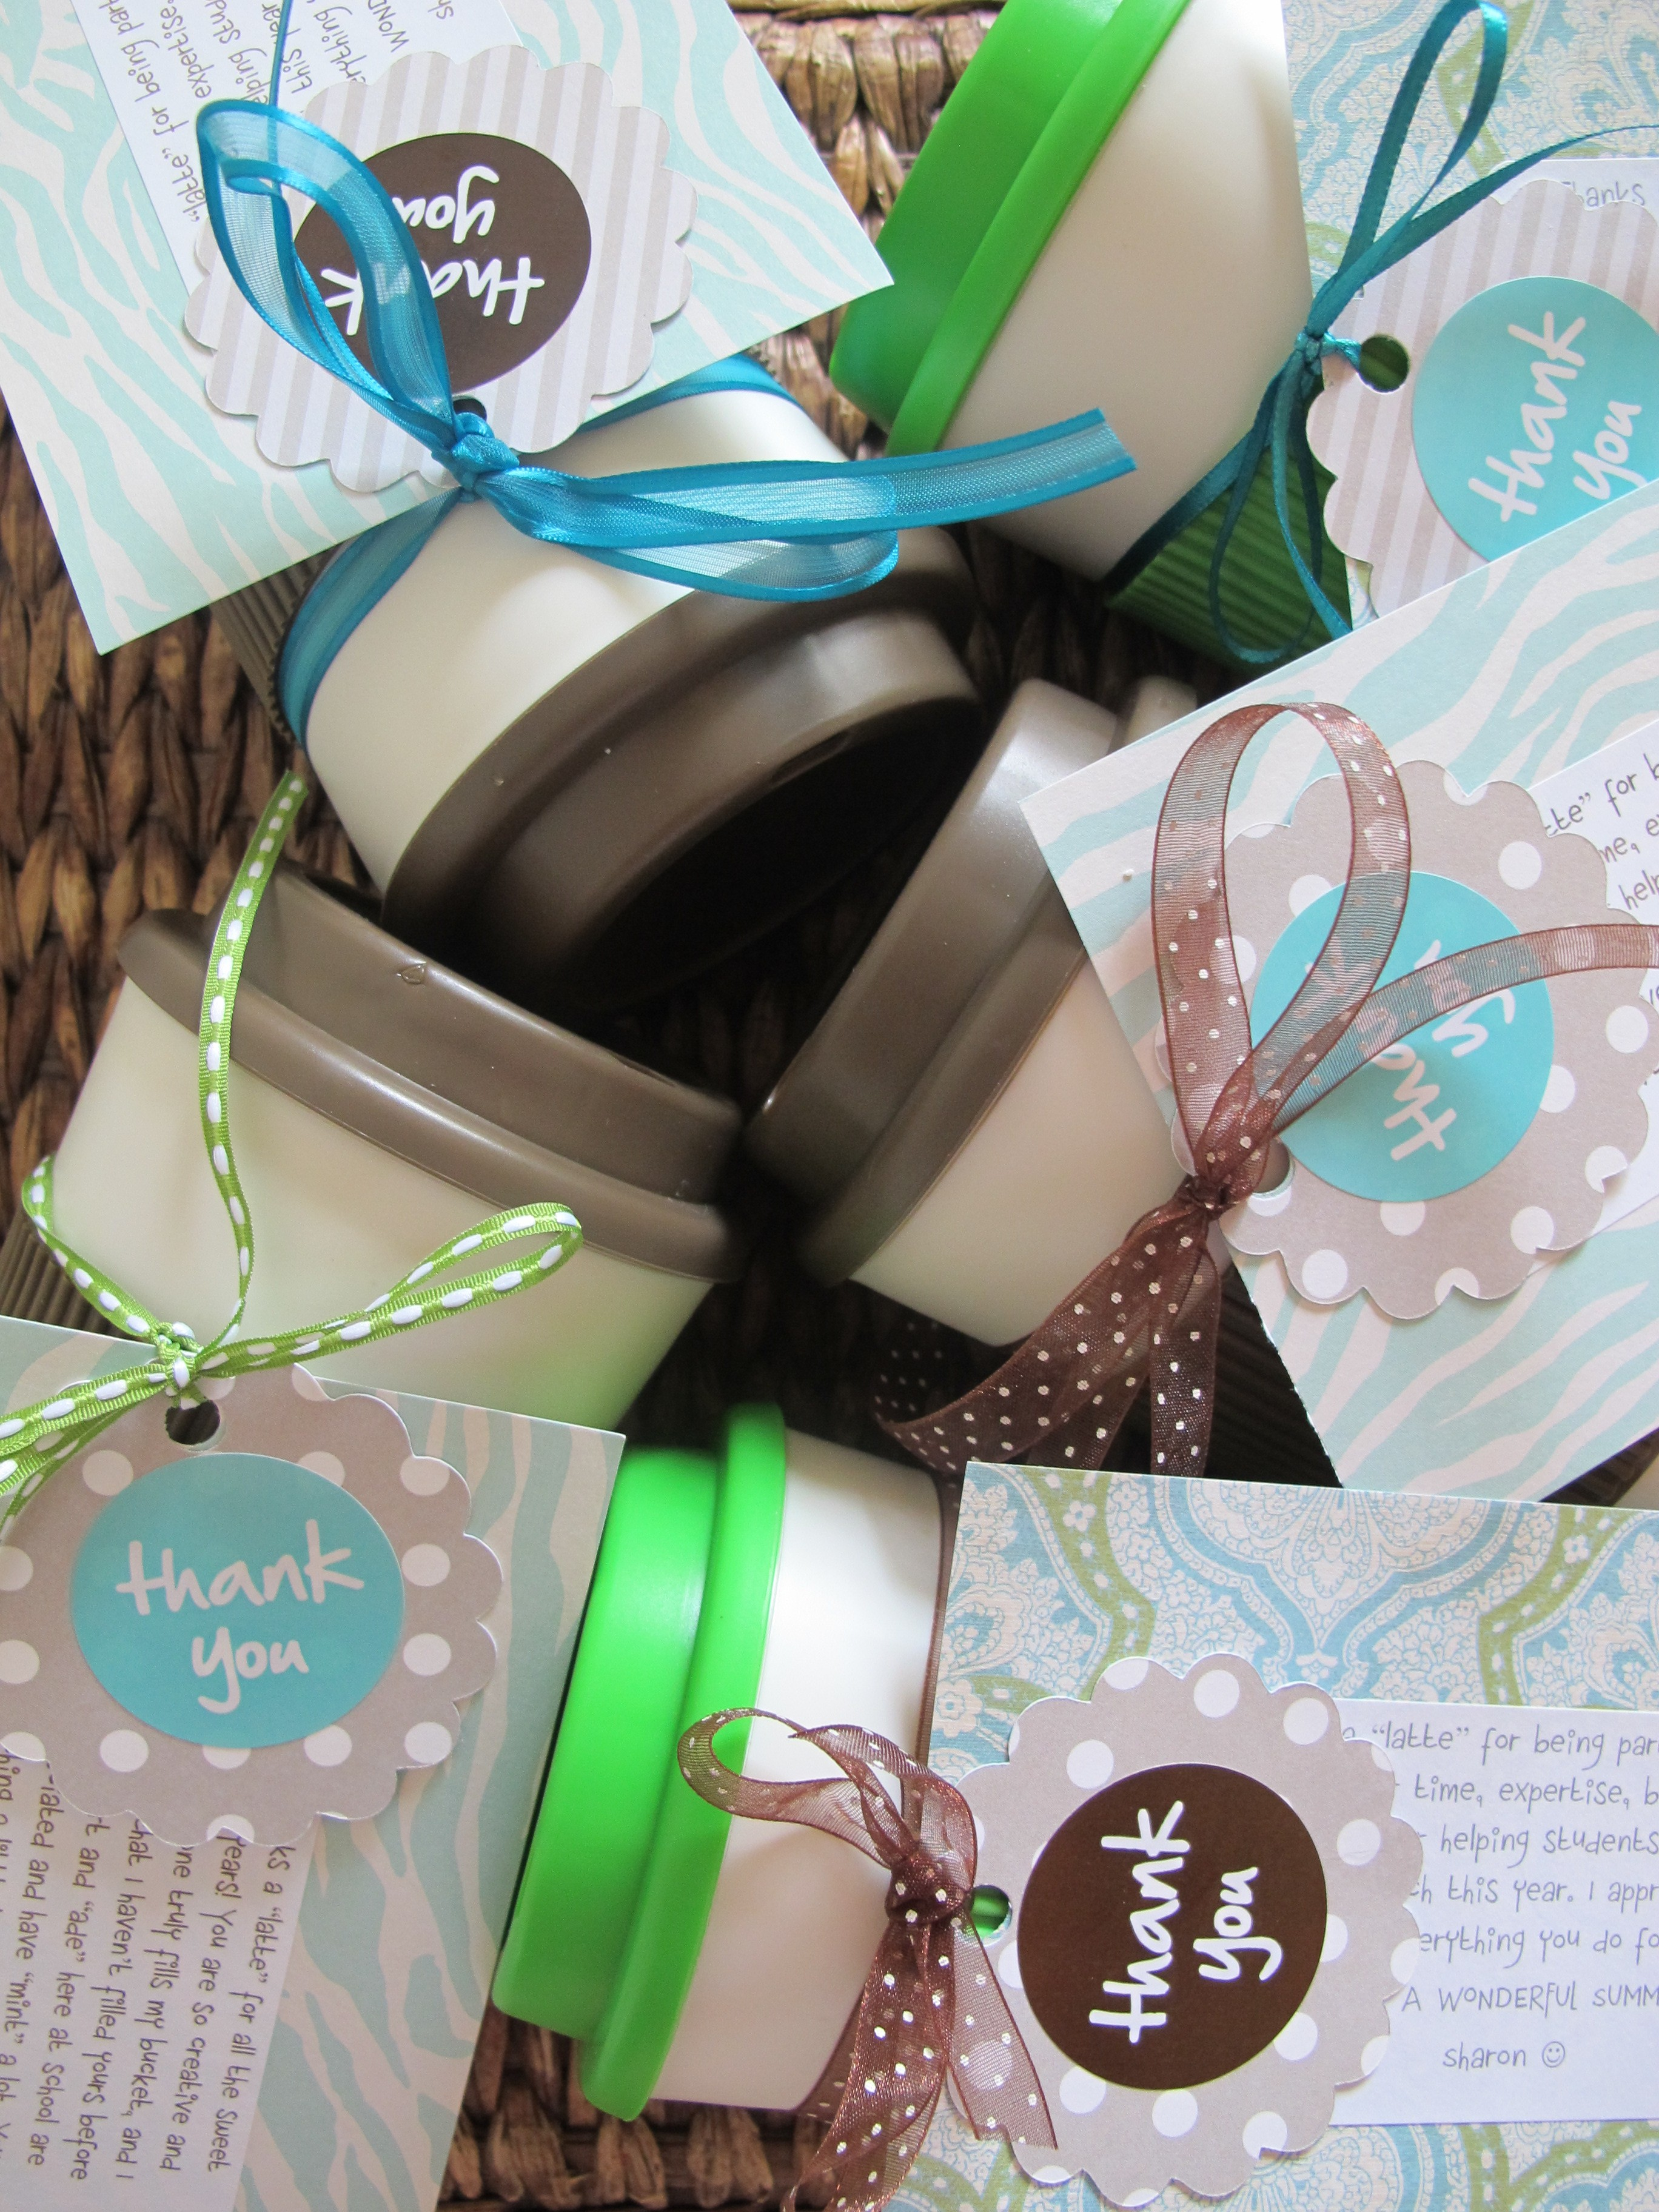 Homemade Thank You Gifts For Volunteers #18